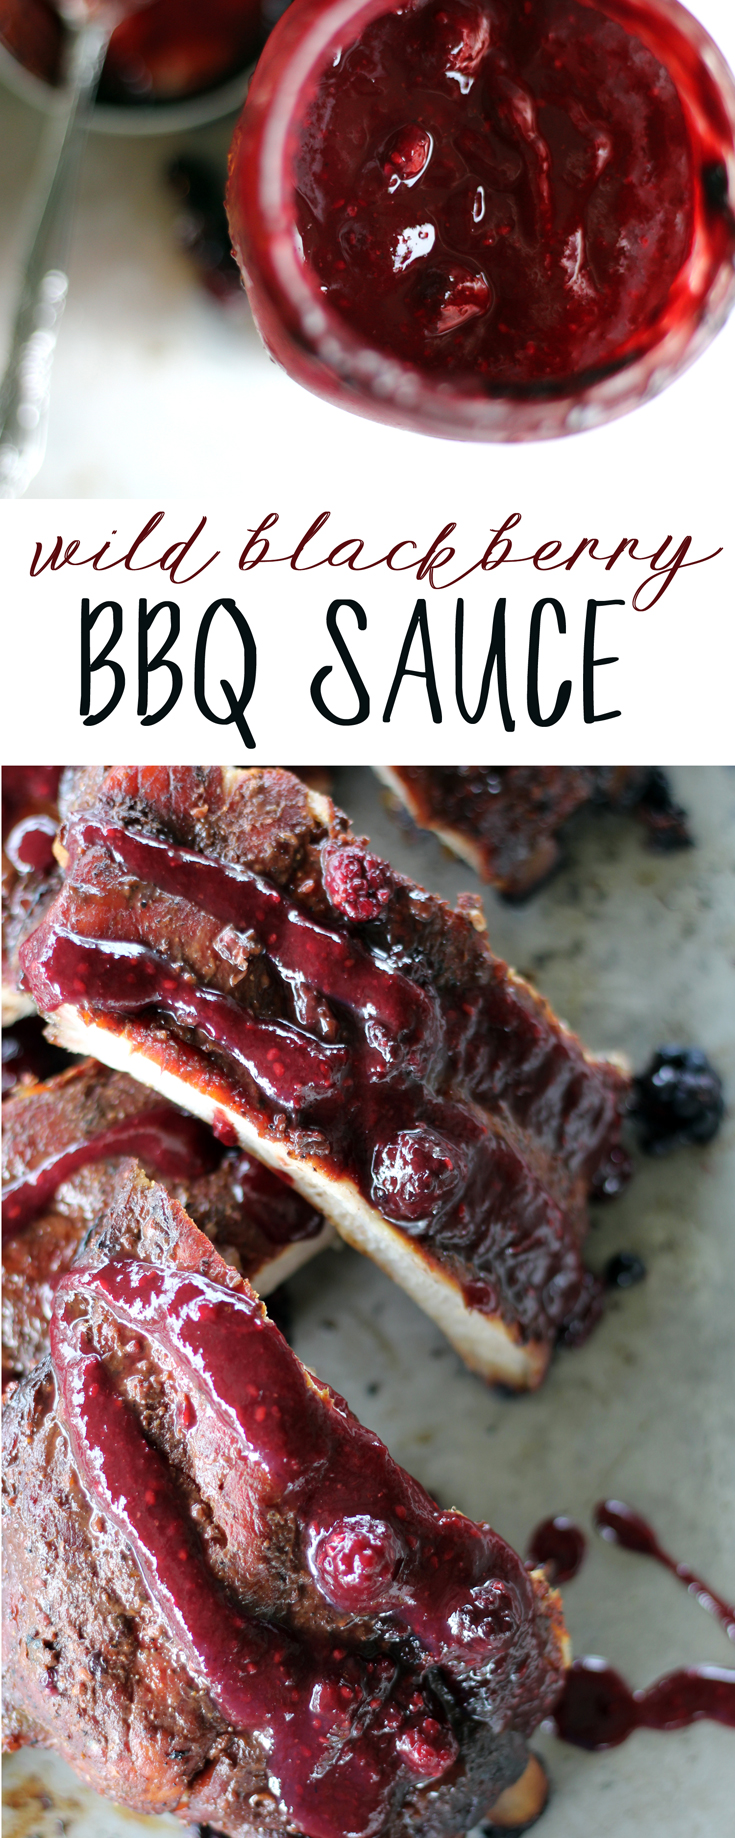 Sweet, fruity and tangy, our Wild Blackberry BBQ Sauce is lip-smacking good. Try it on ribs, chicken and more. Made with fresh hand-picked wild blackberries. #bbqsauce #blackberrybbqsauce